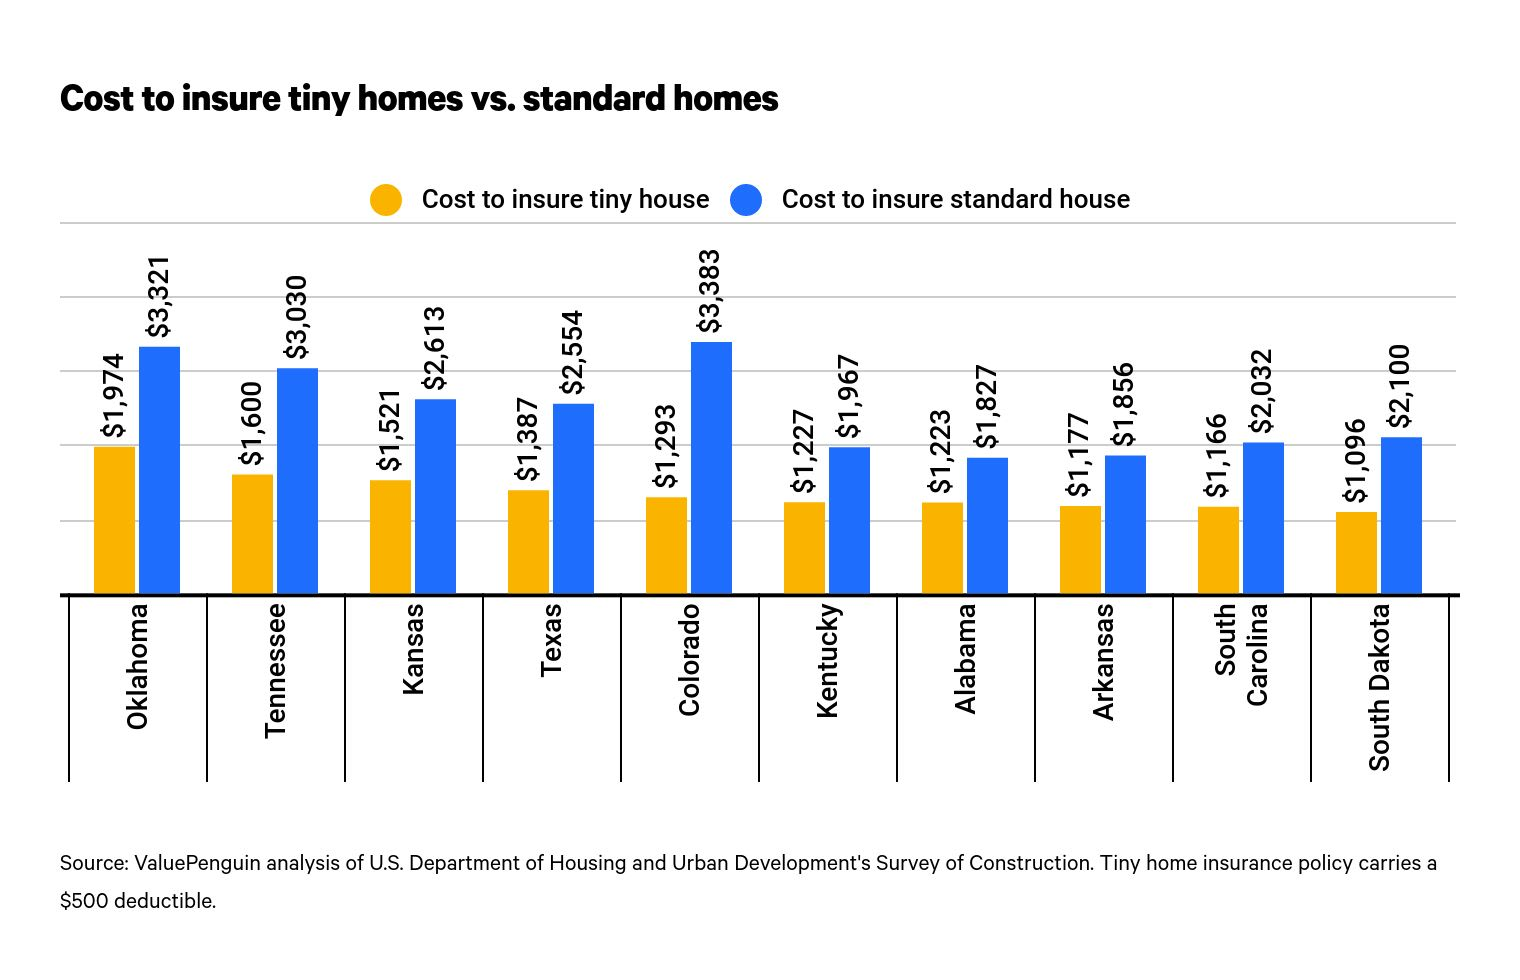 Cost comparison of home insurance for tiny and standard homes